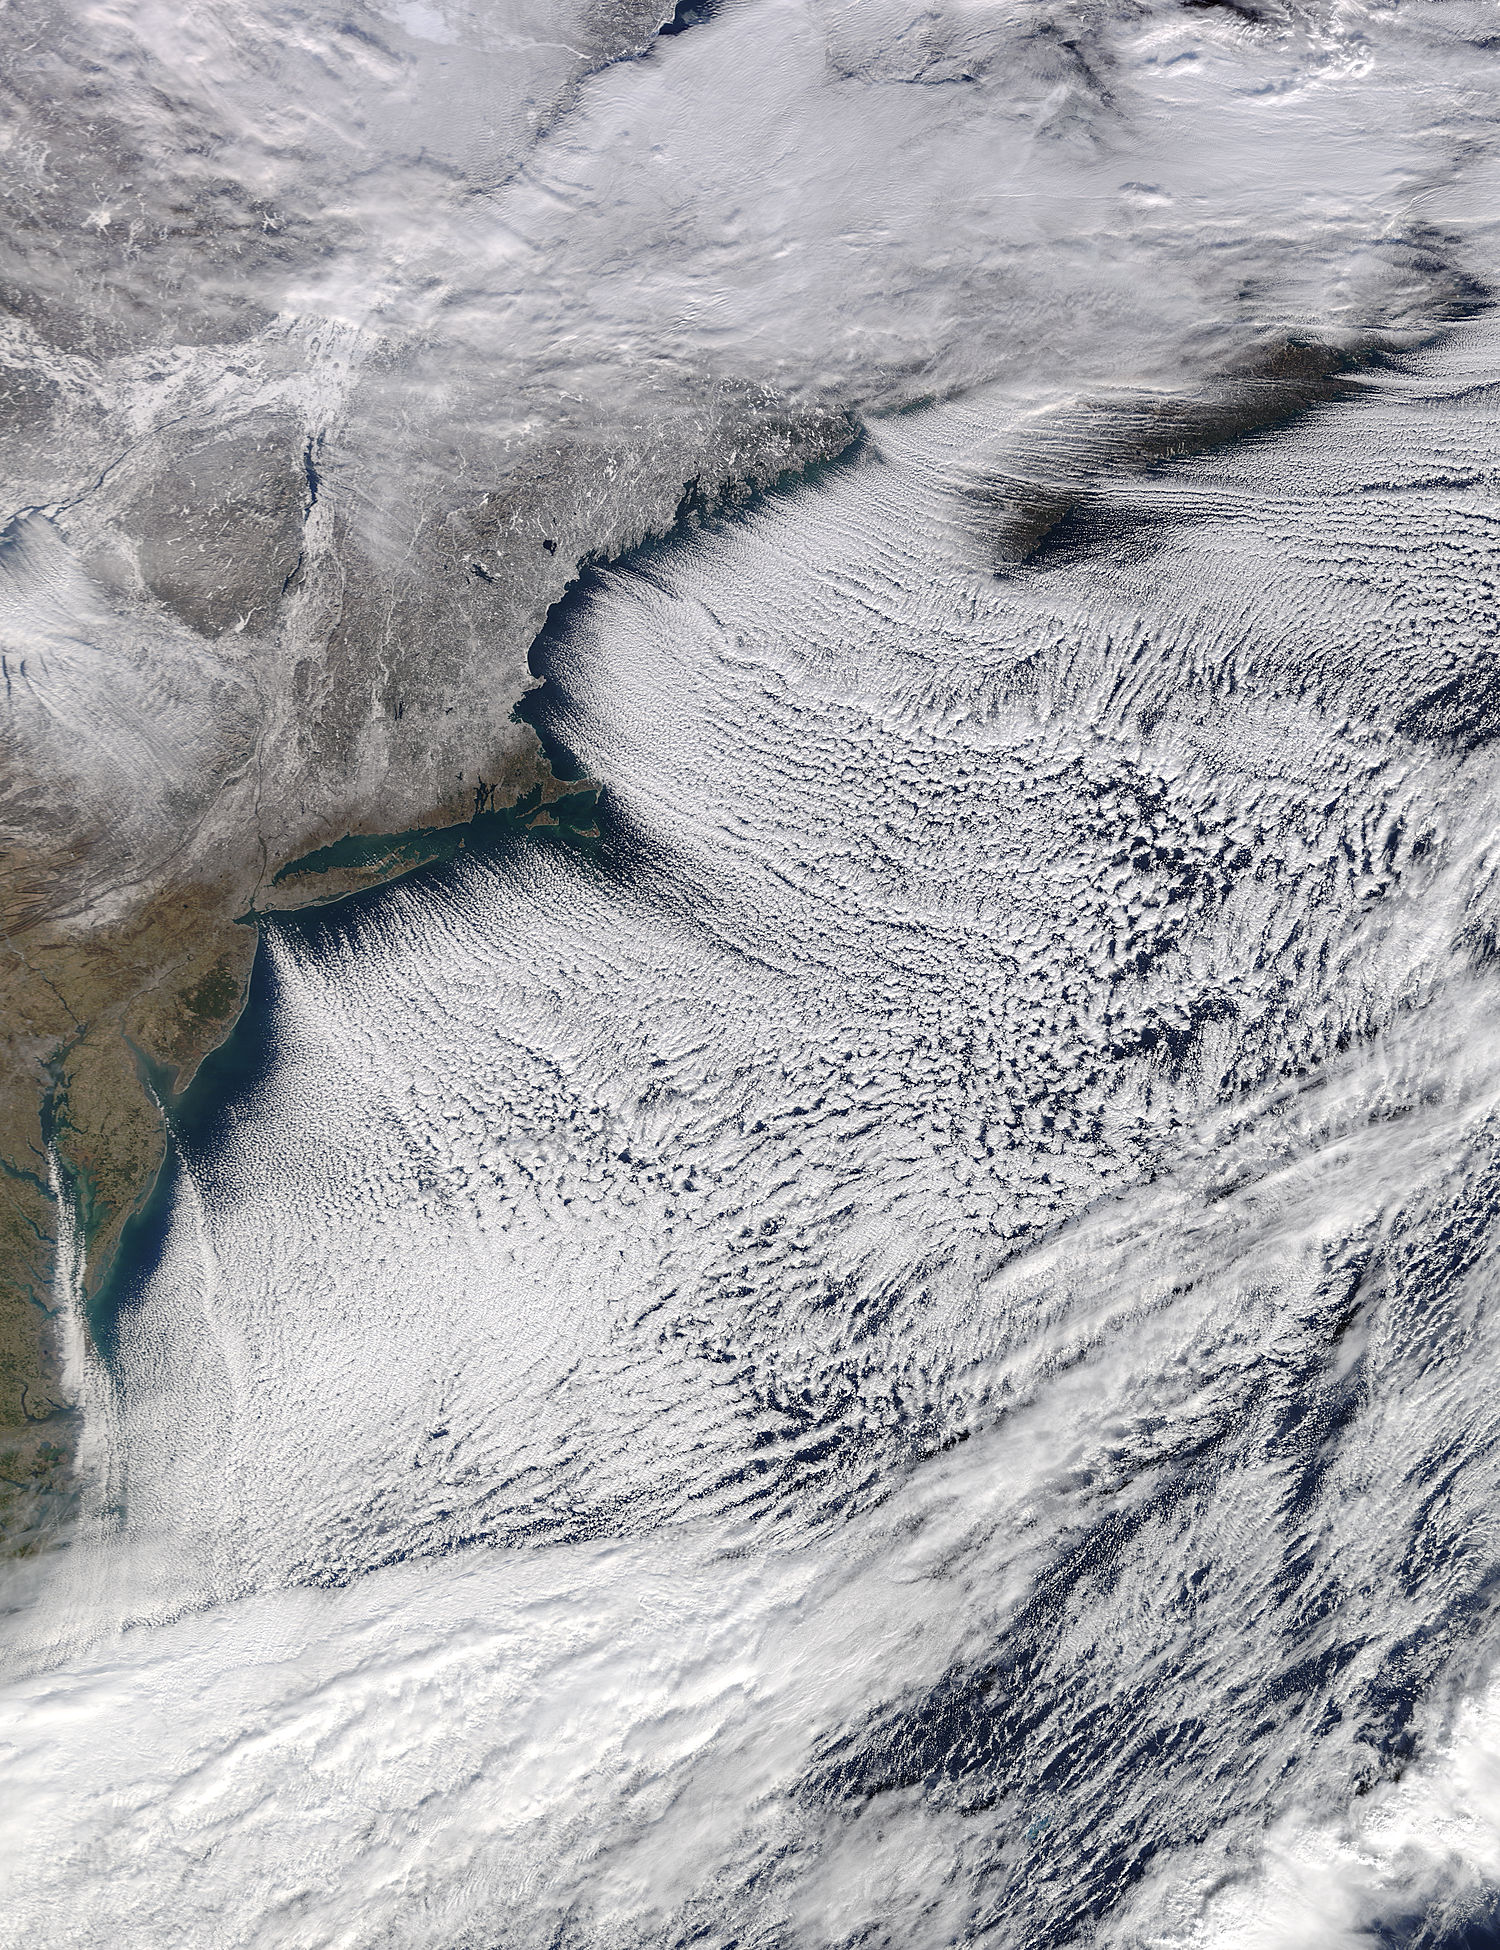 Cloud streets off the northeastern United States - related image preview